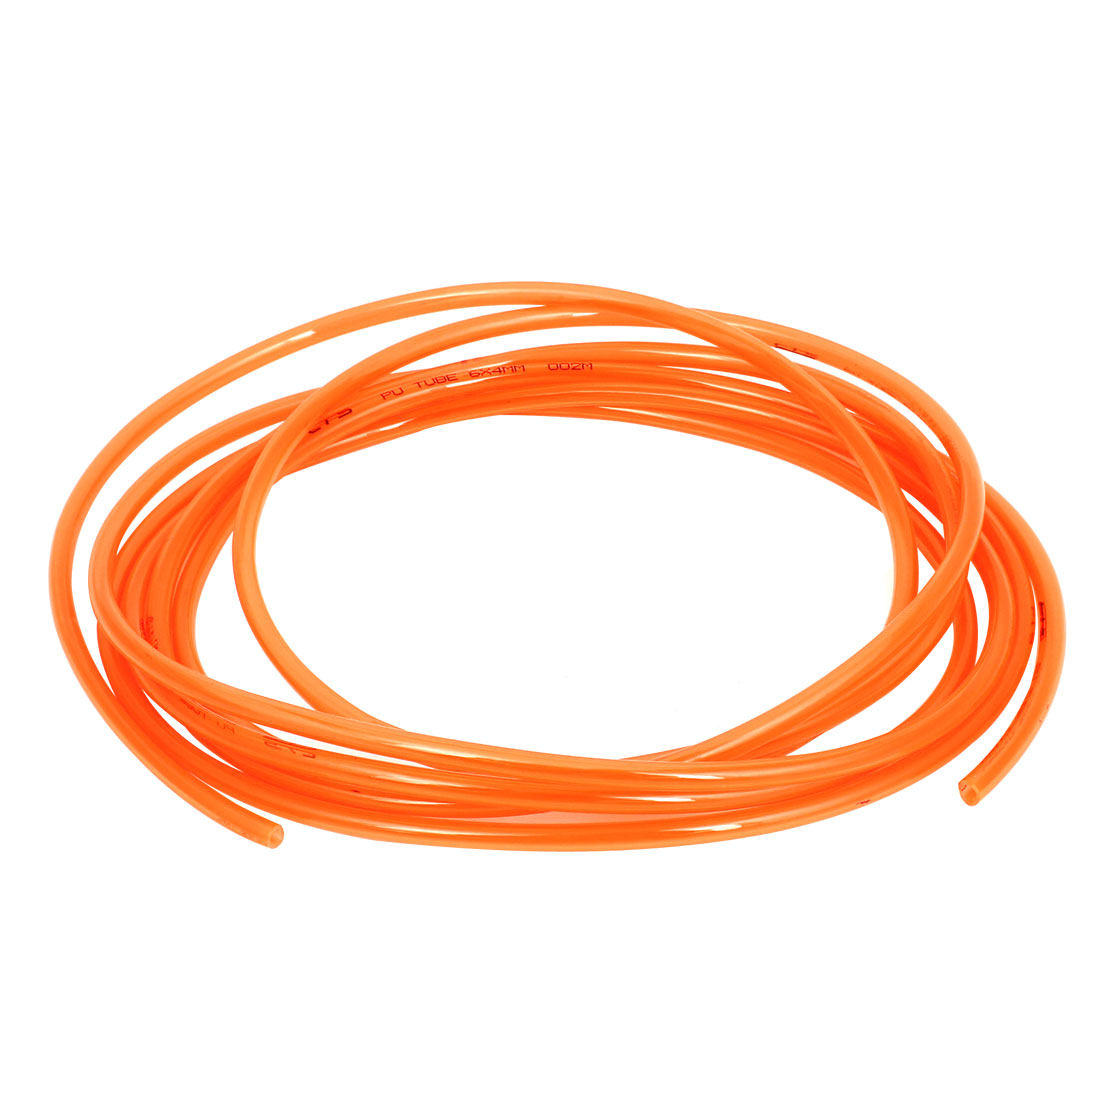 4M 13Ft Long 6mmx4mm Air Fuel Gas Polyurethane Flexible PU Hose Tube Pipe Orange